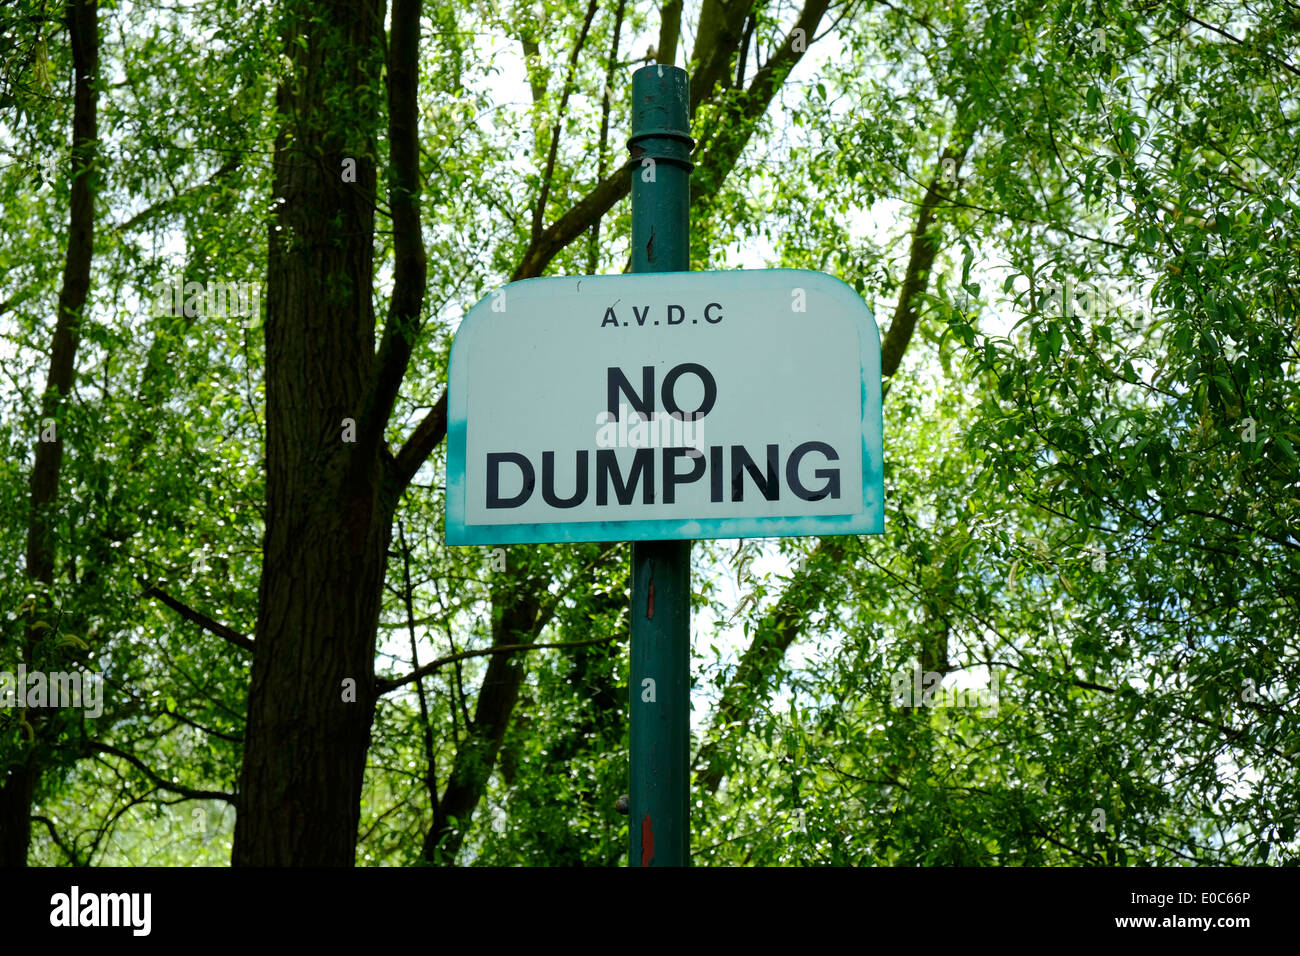 NO Dumping Sign in a park in Aylesbury - Stock Image